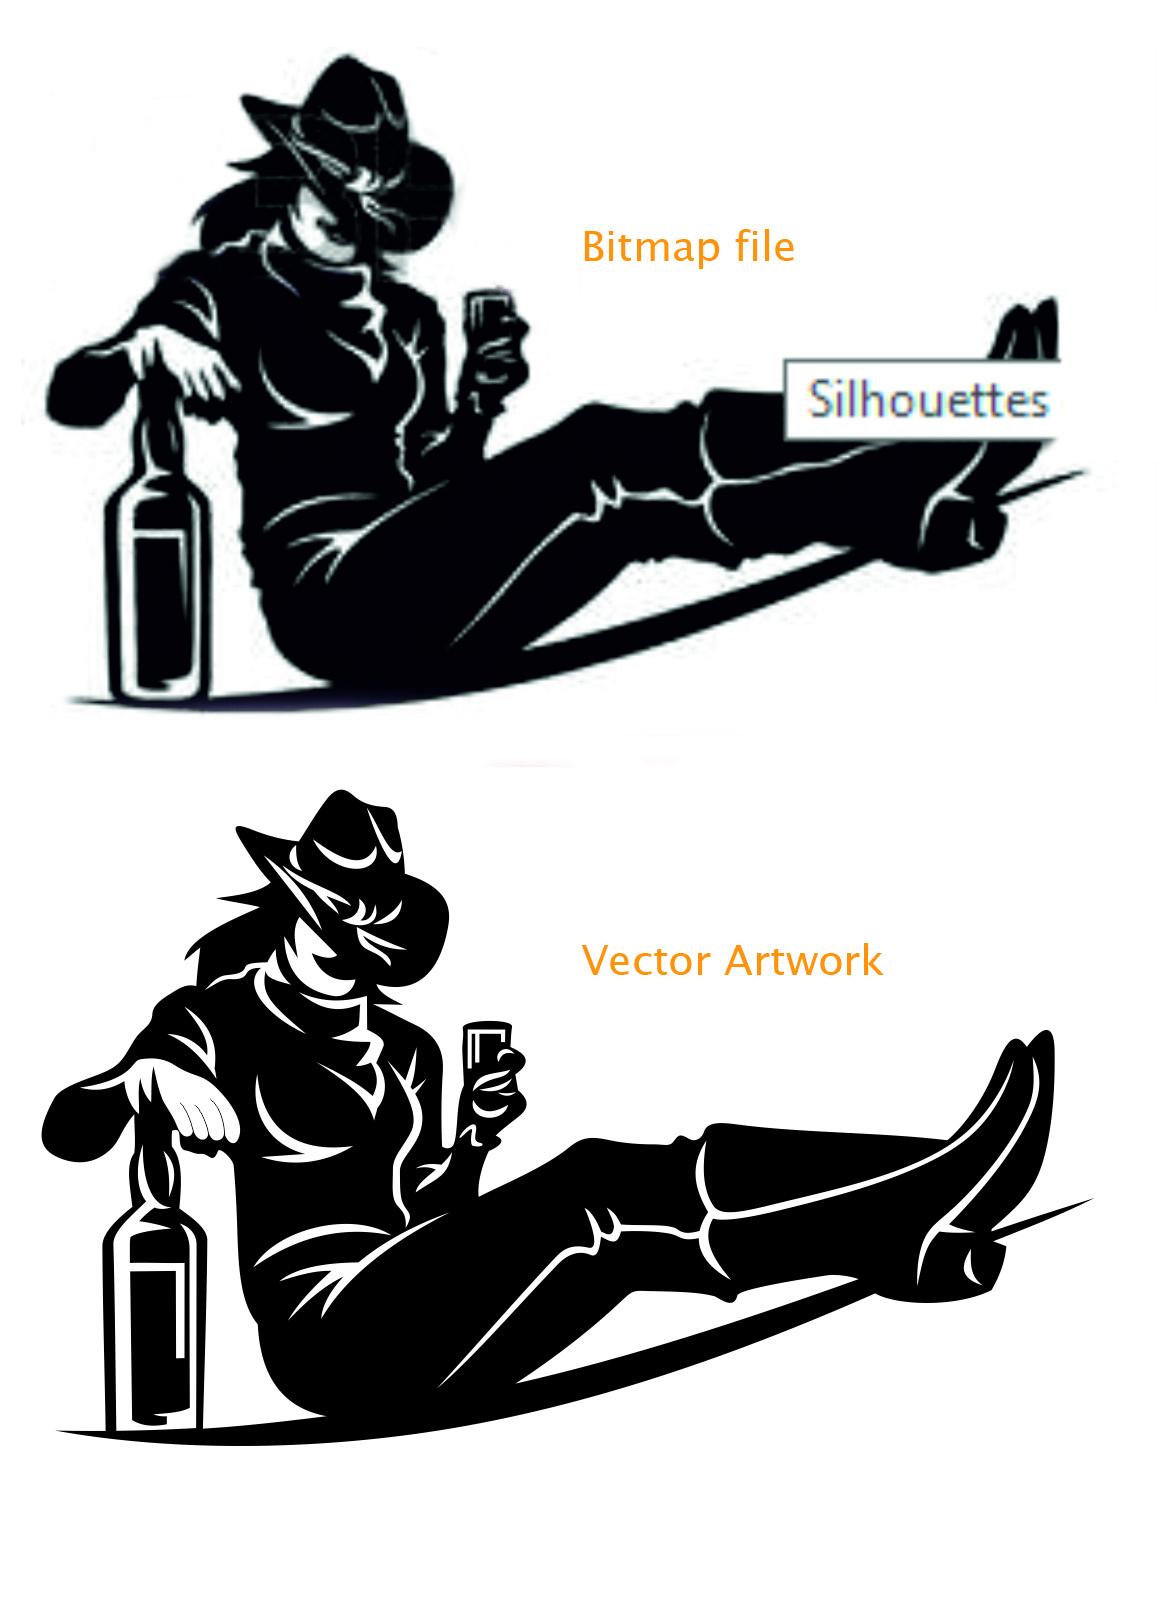 Comprised clipart vector illustration.